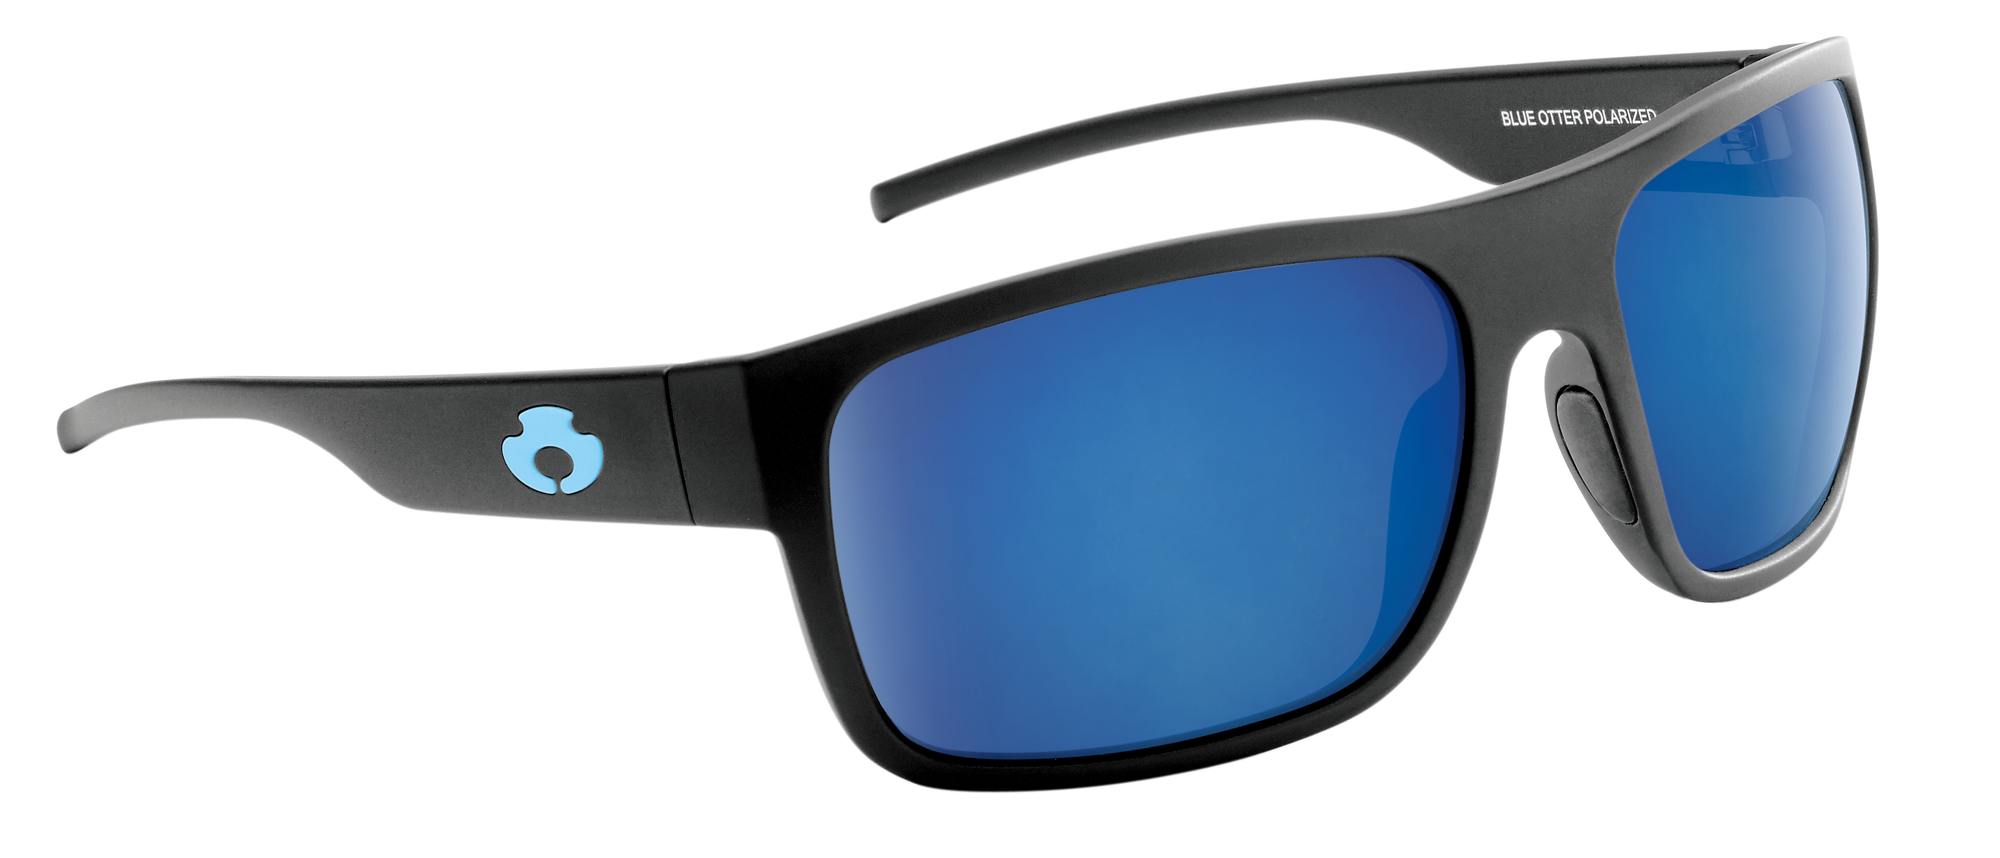 |Polarized Sunglasses| |Rabun| Matte Black-Night Blue | NYLON